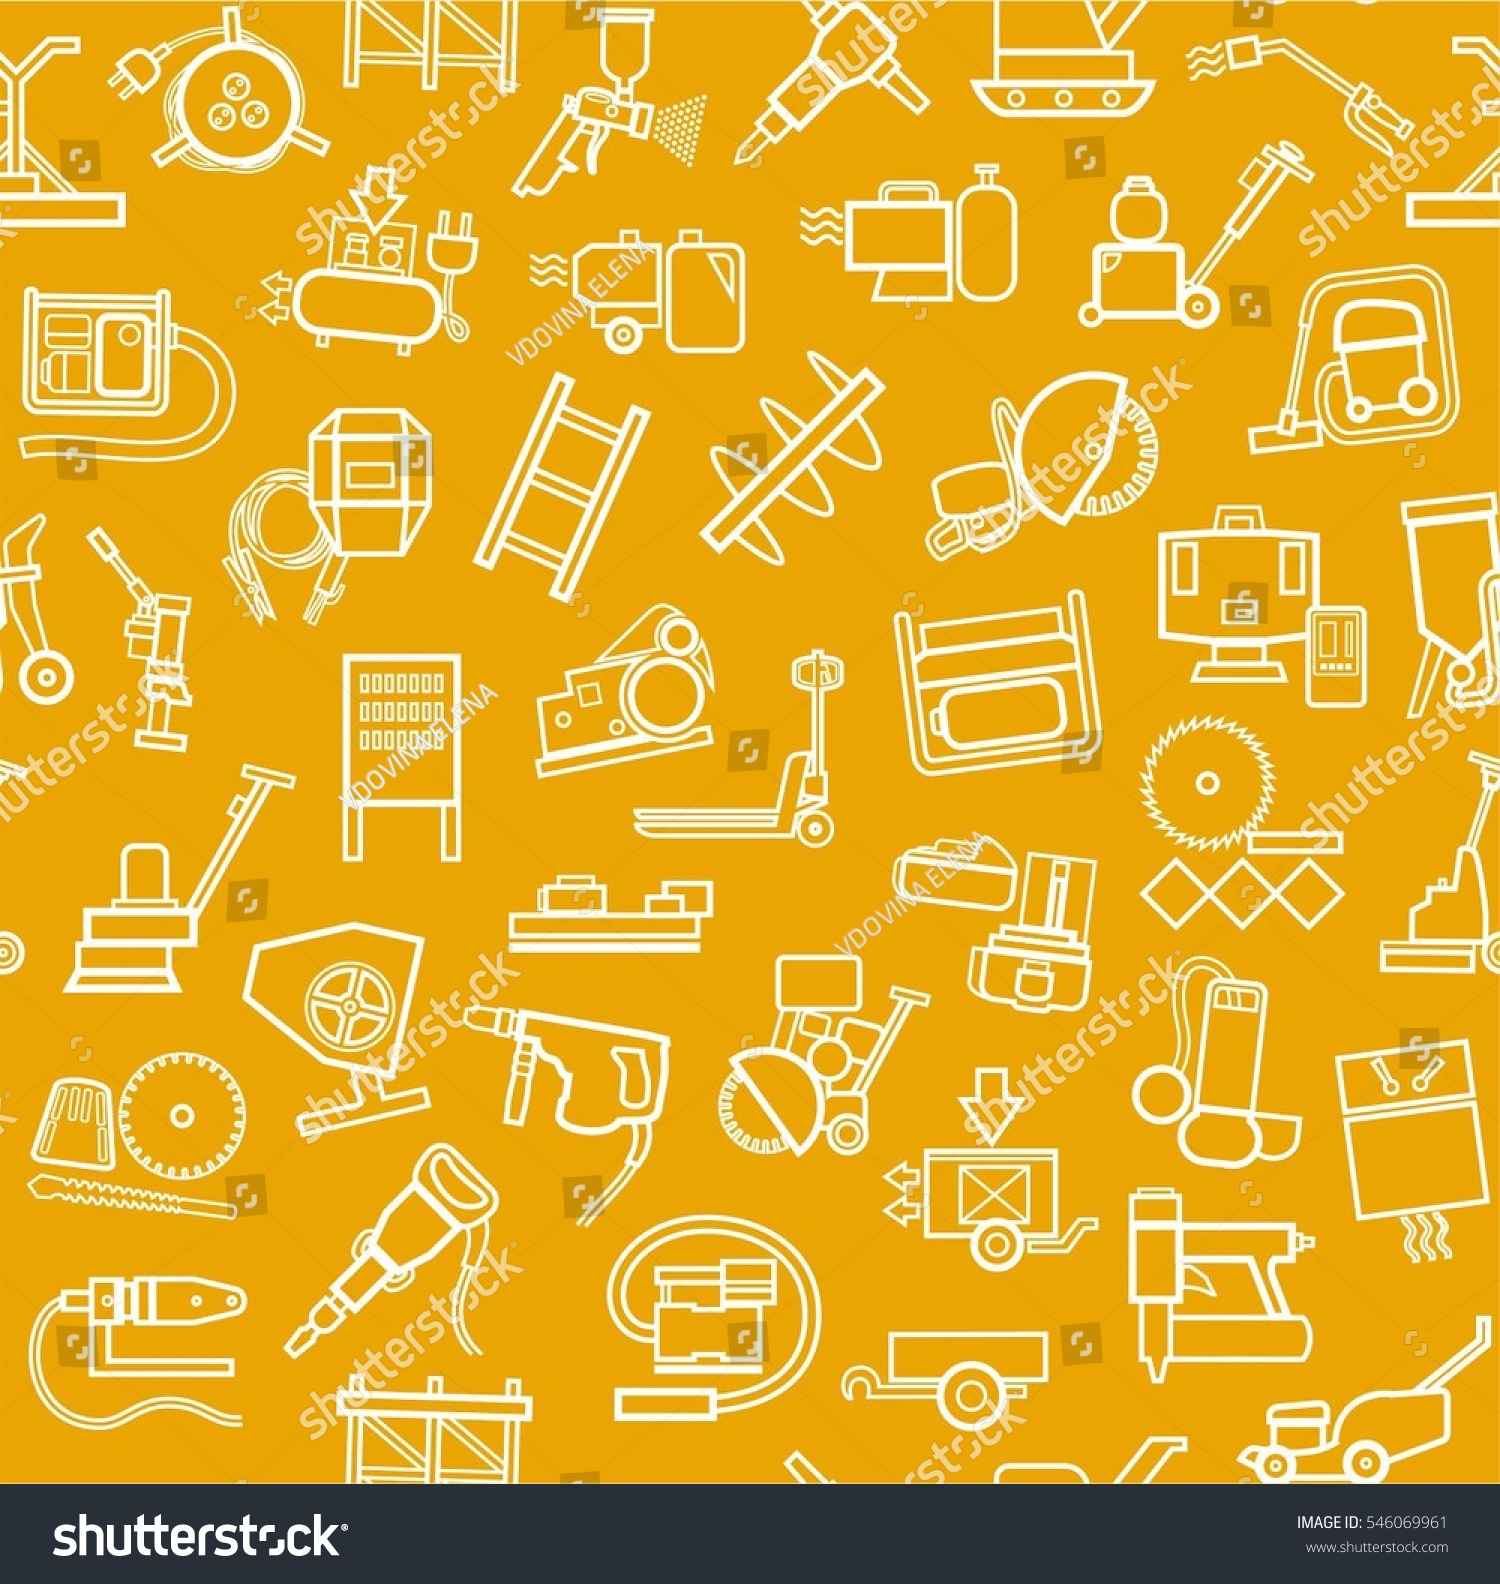 Construction Equipment And Tools Seamless Background Yellow Contour Vector With Images